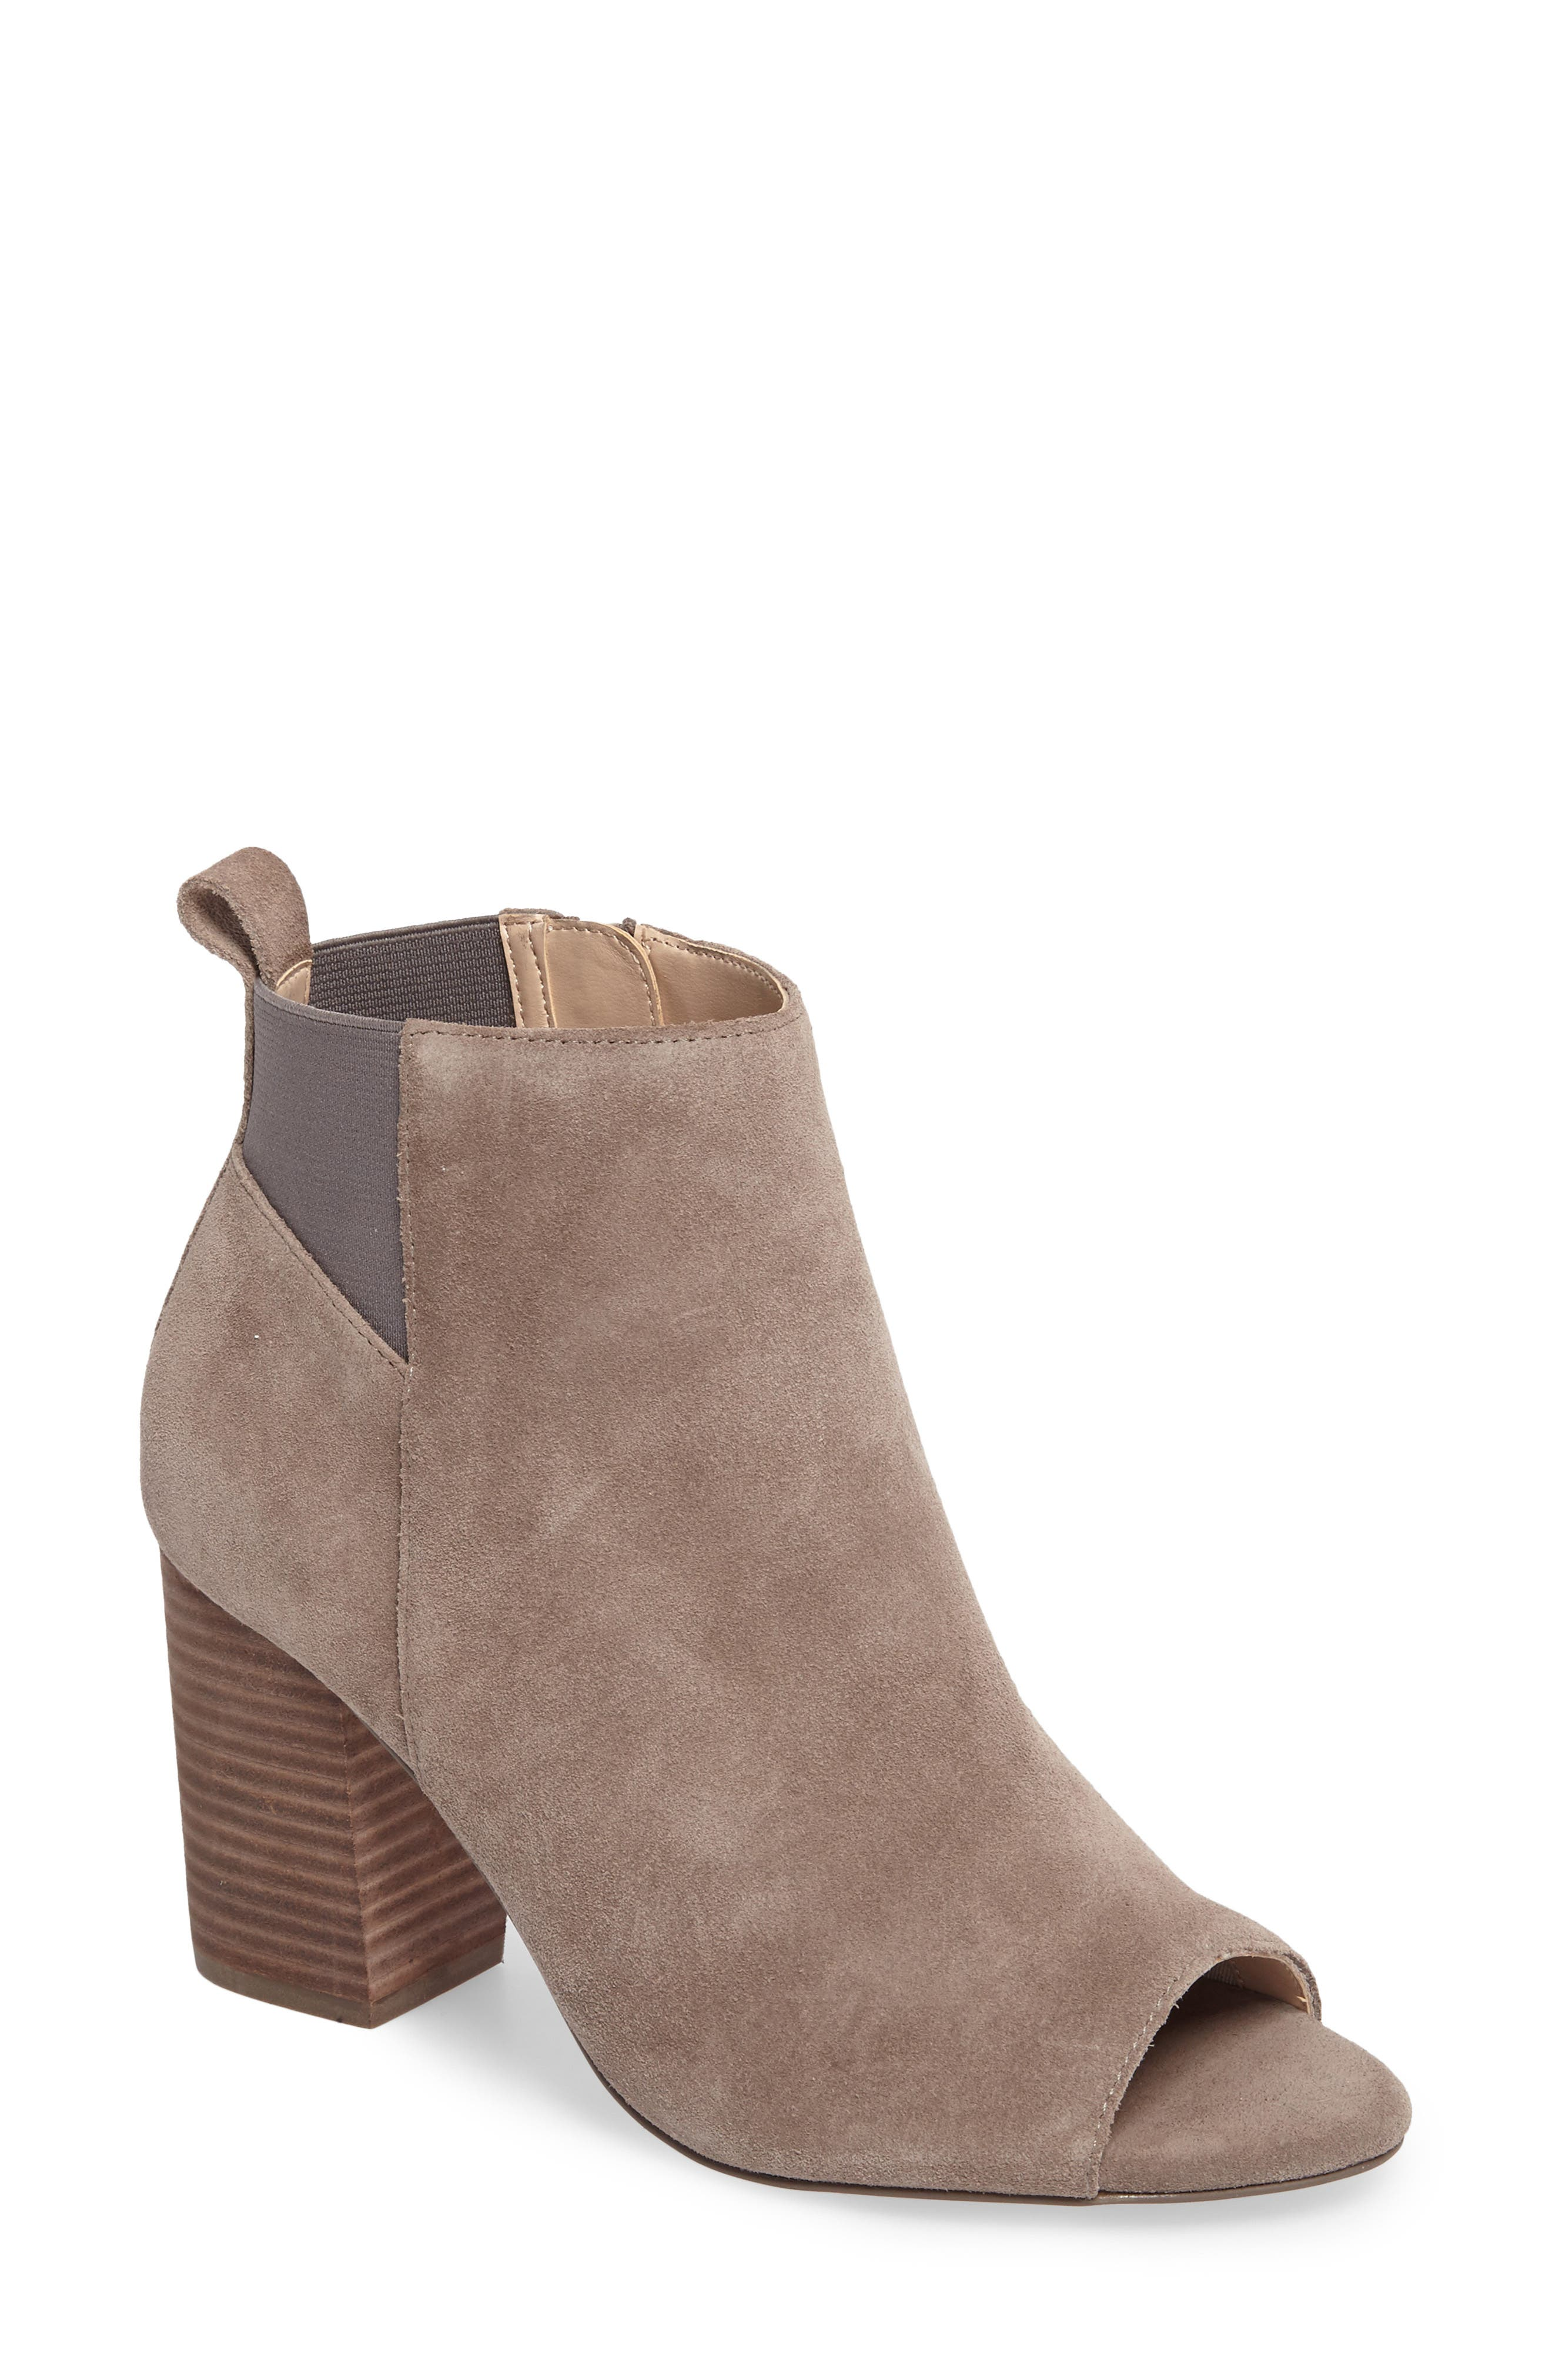 Vita Peep Toe Bootie,                         Main,                         color, 020